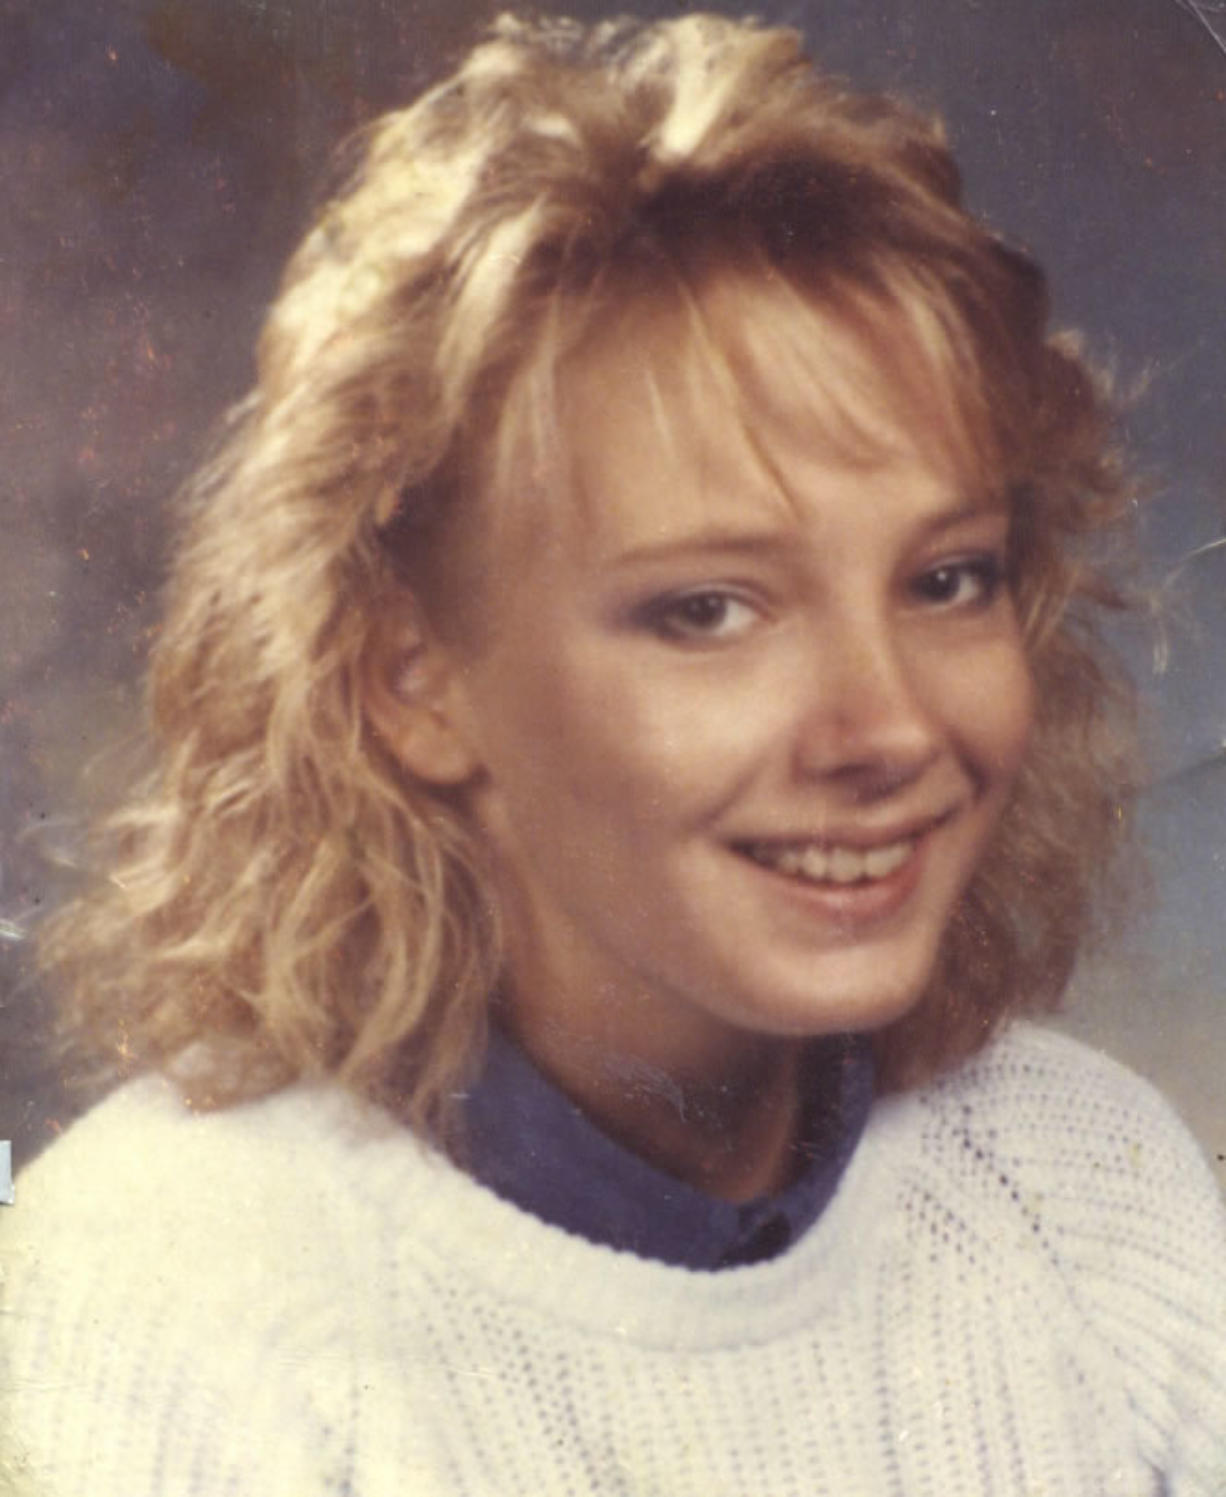 Kimberley Kersey left school on foot in March 1987.